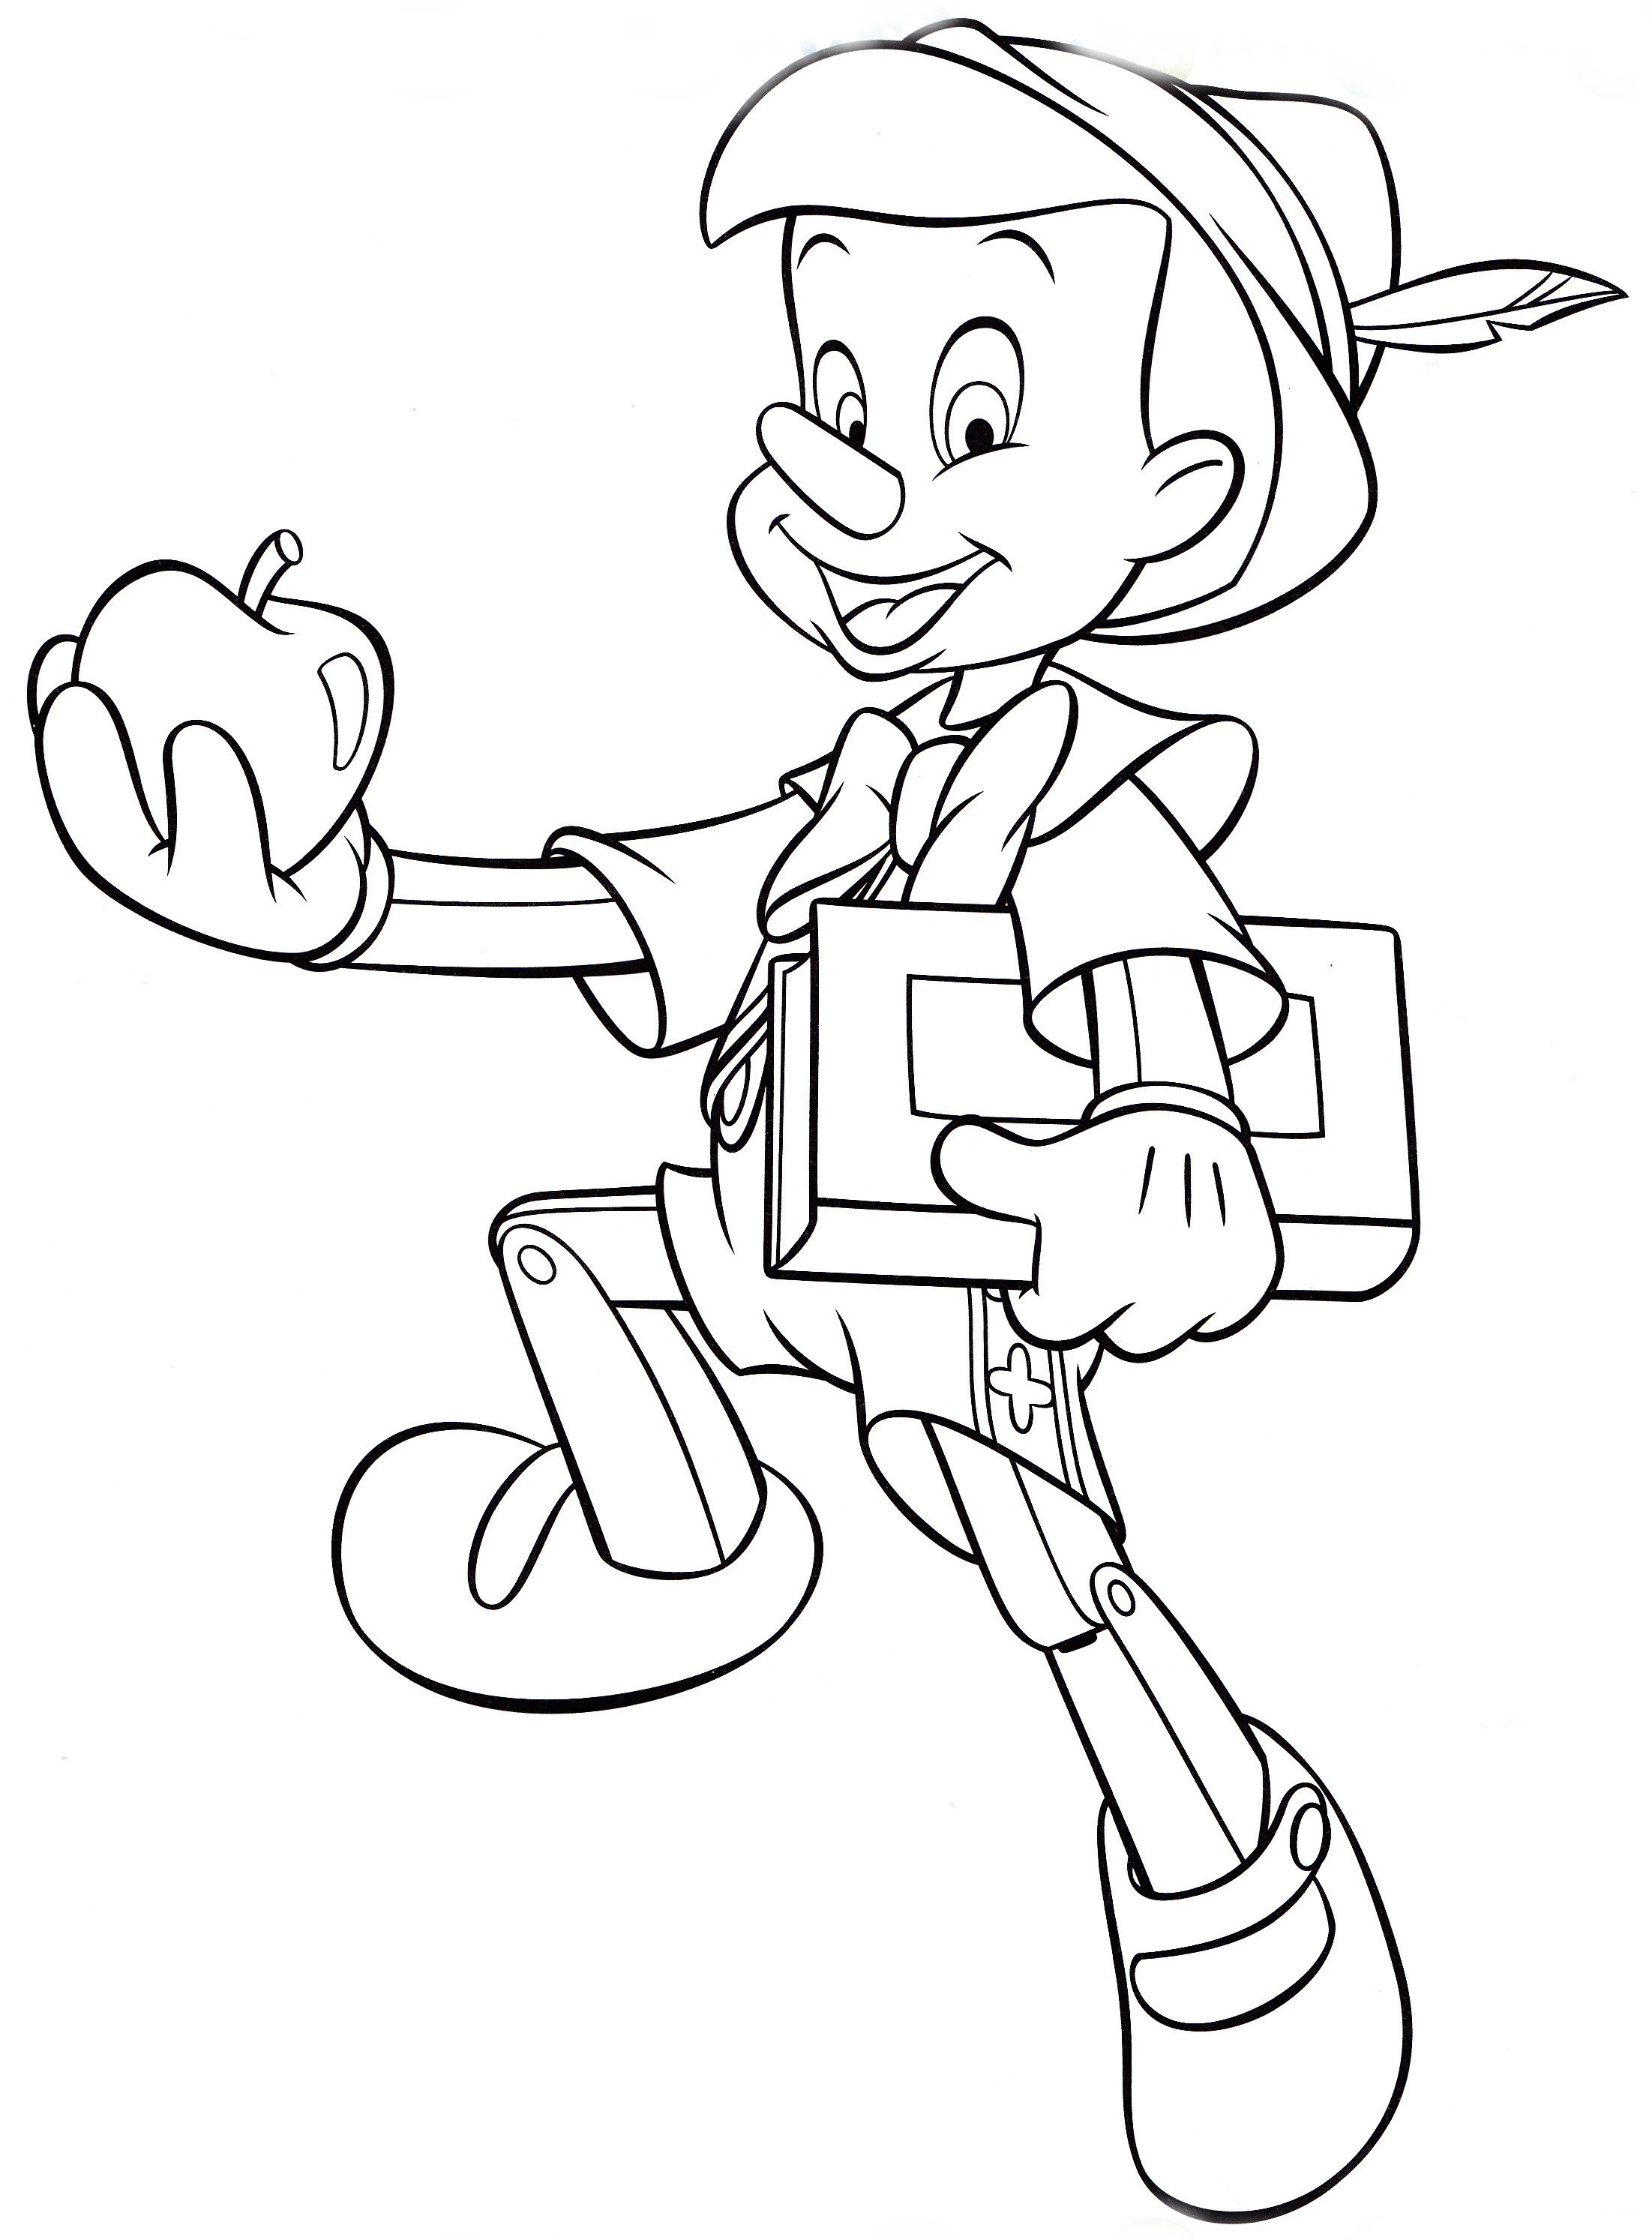 Pinocchio Coloring Pages   Disneyclips.com   2987x2203